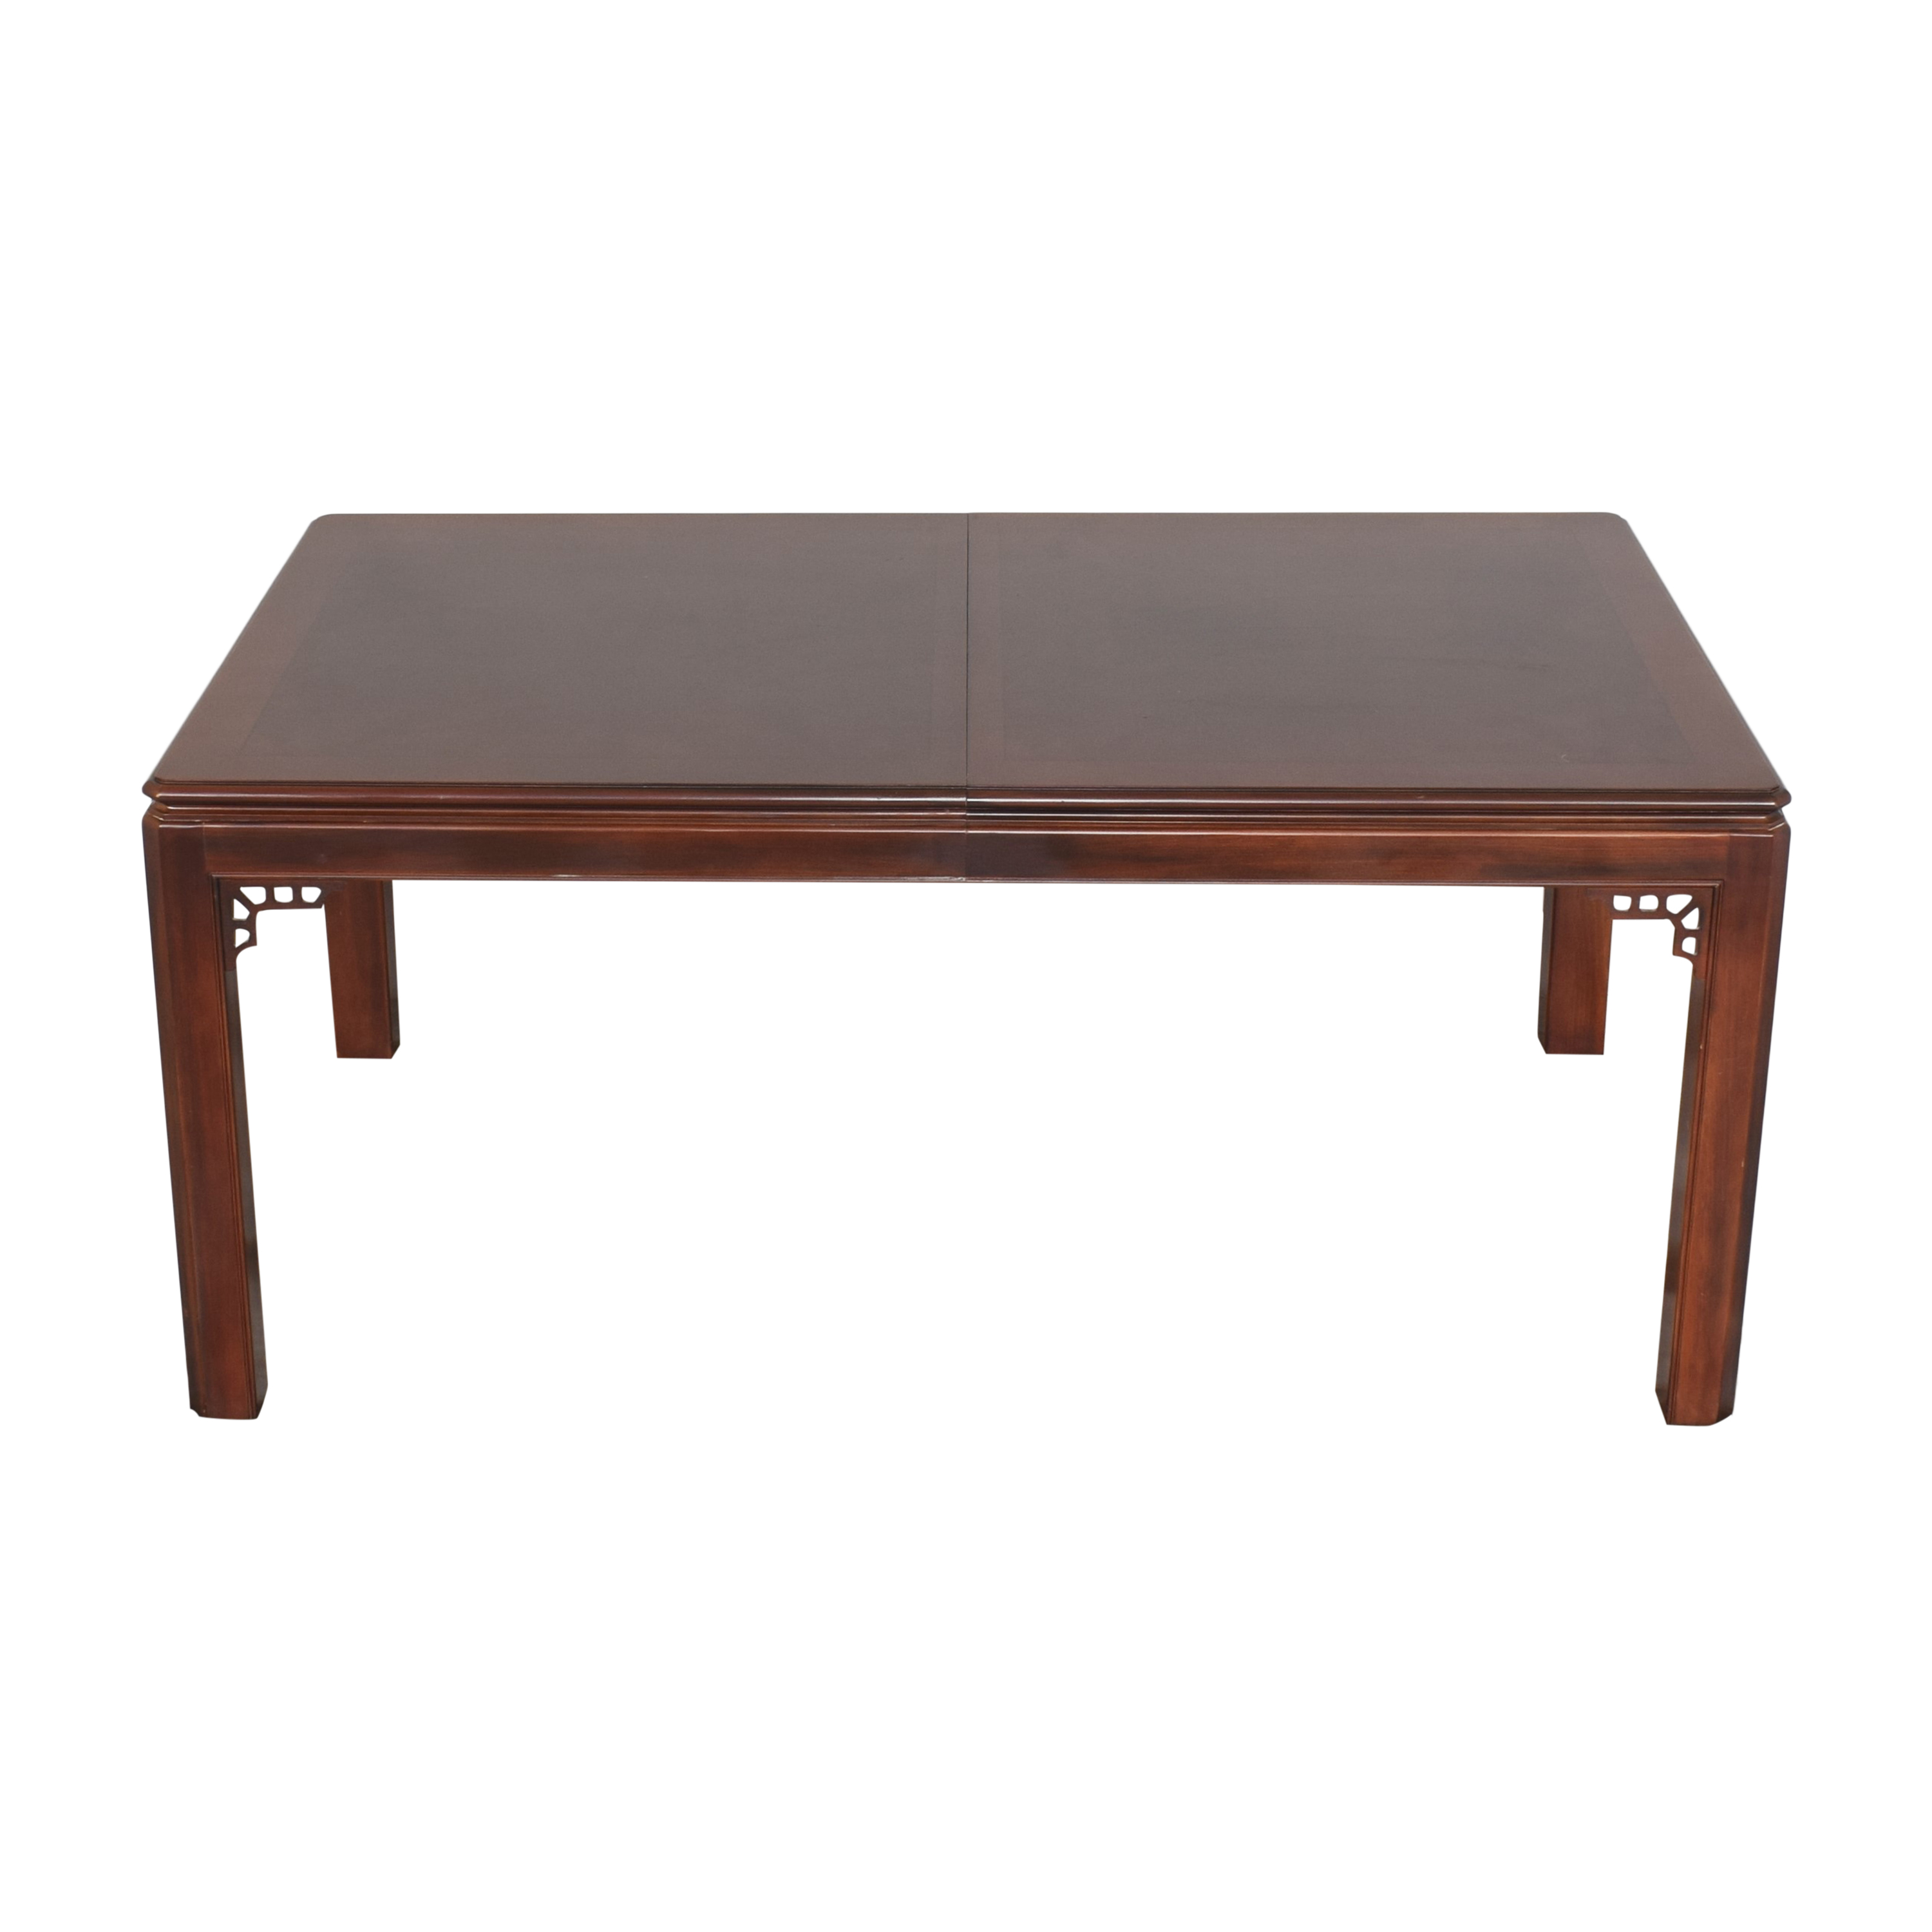 Drexel Chippendale Extendable Dining Table Drexel